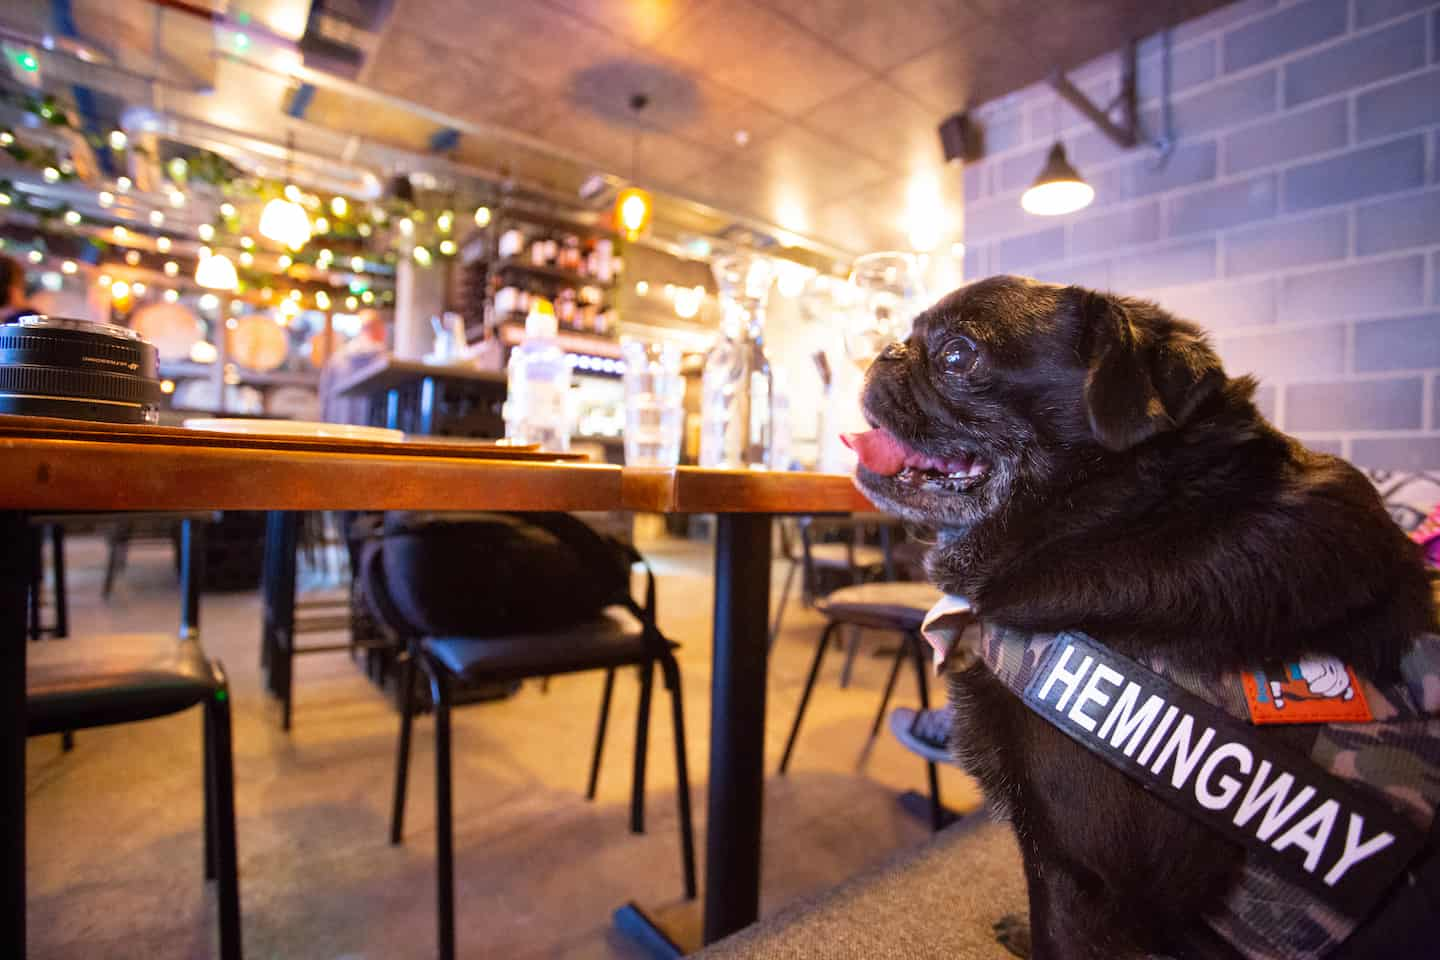 My Dog-friendly London Clapham & Battersea By Hemingway The Pug Vagabond Wines 1